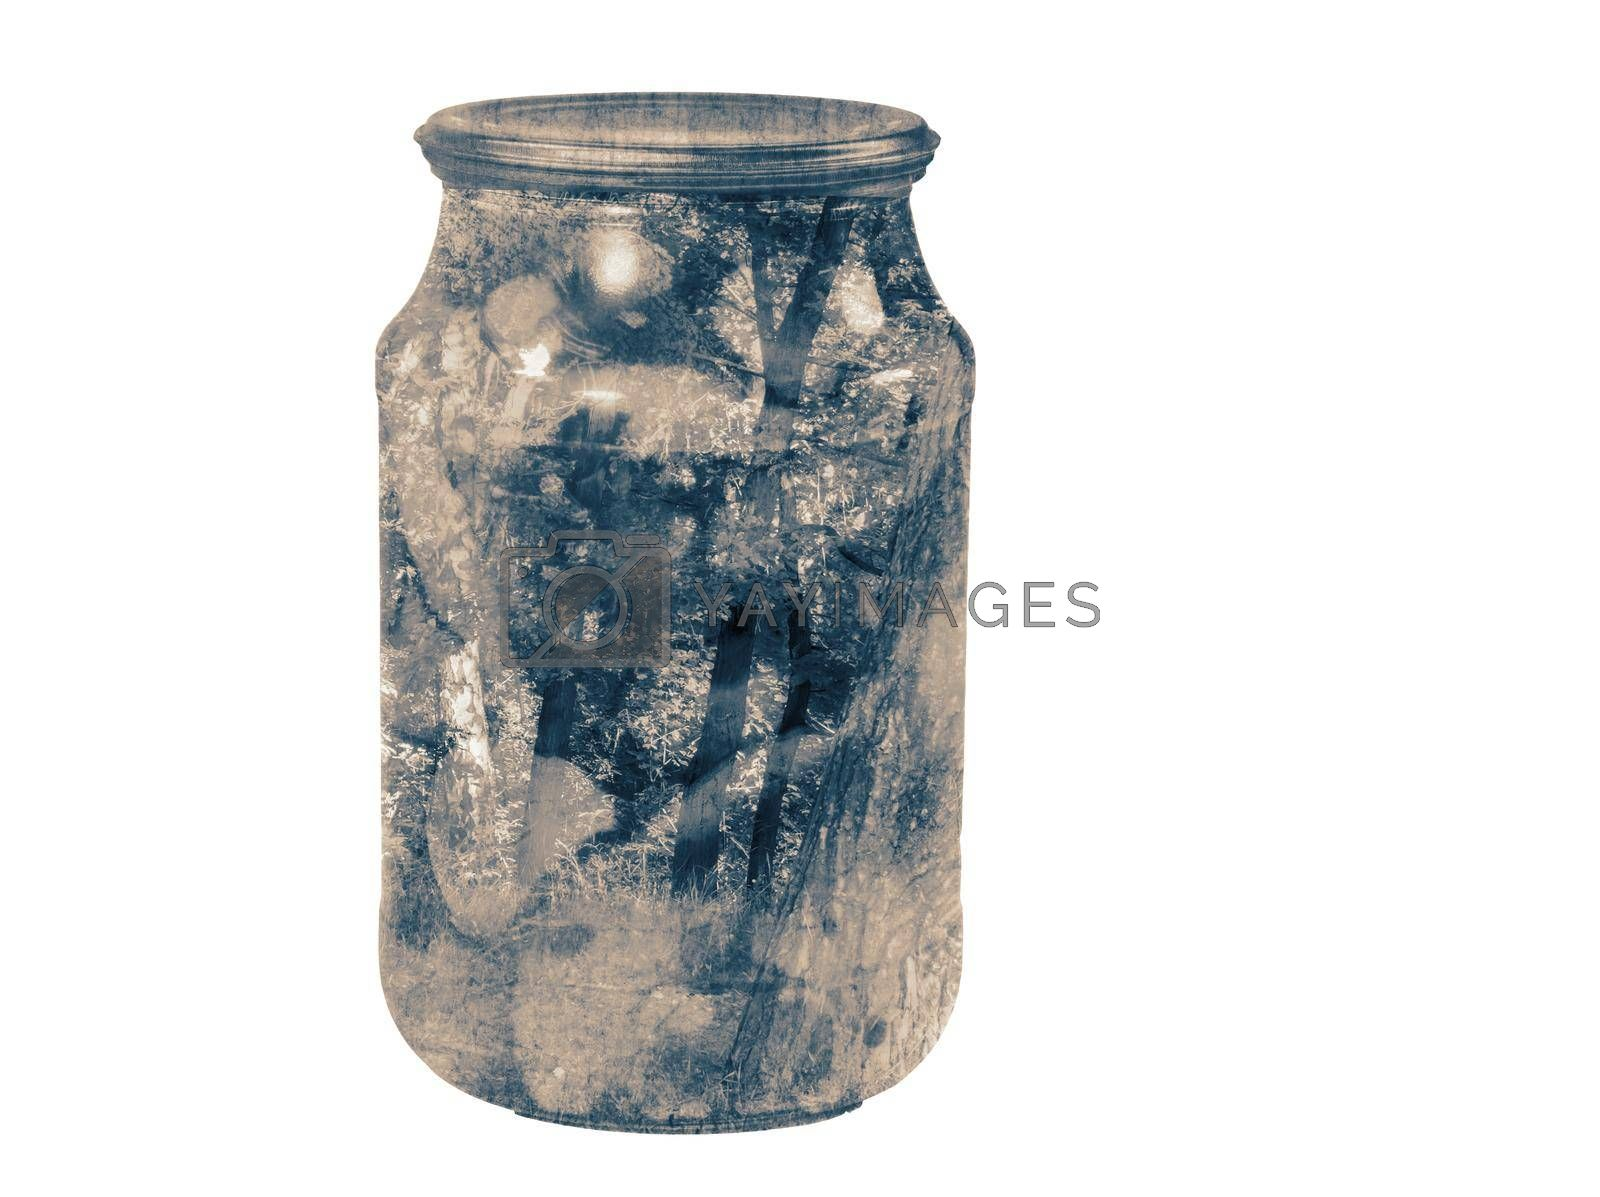 The double exposure effect: glass jar with mushrooms and the landscape. Presented on a white background.